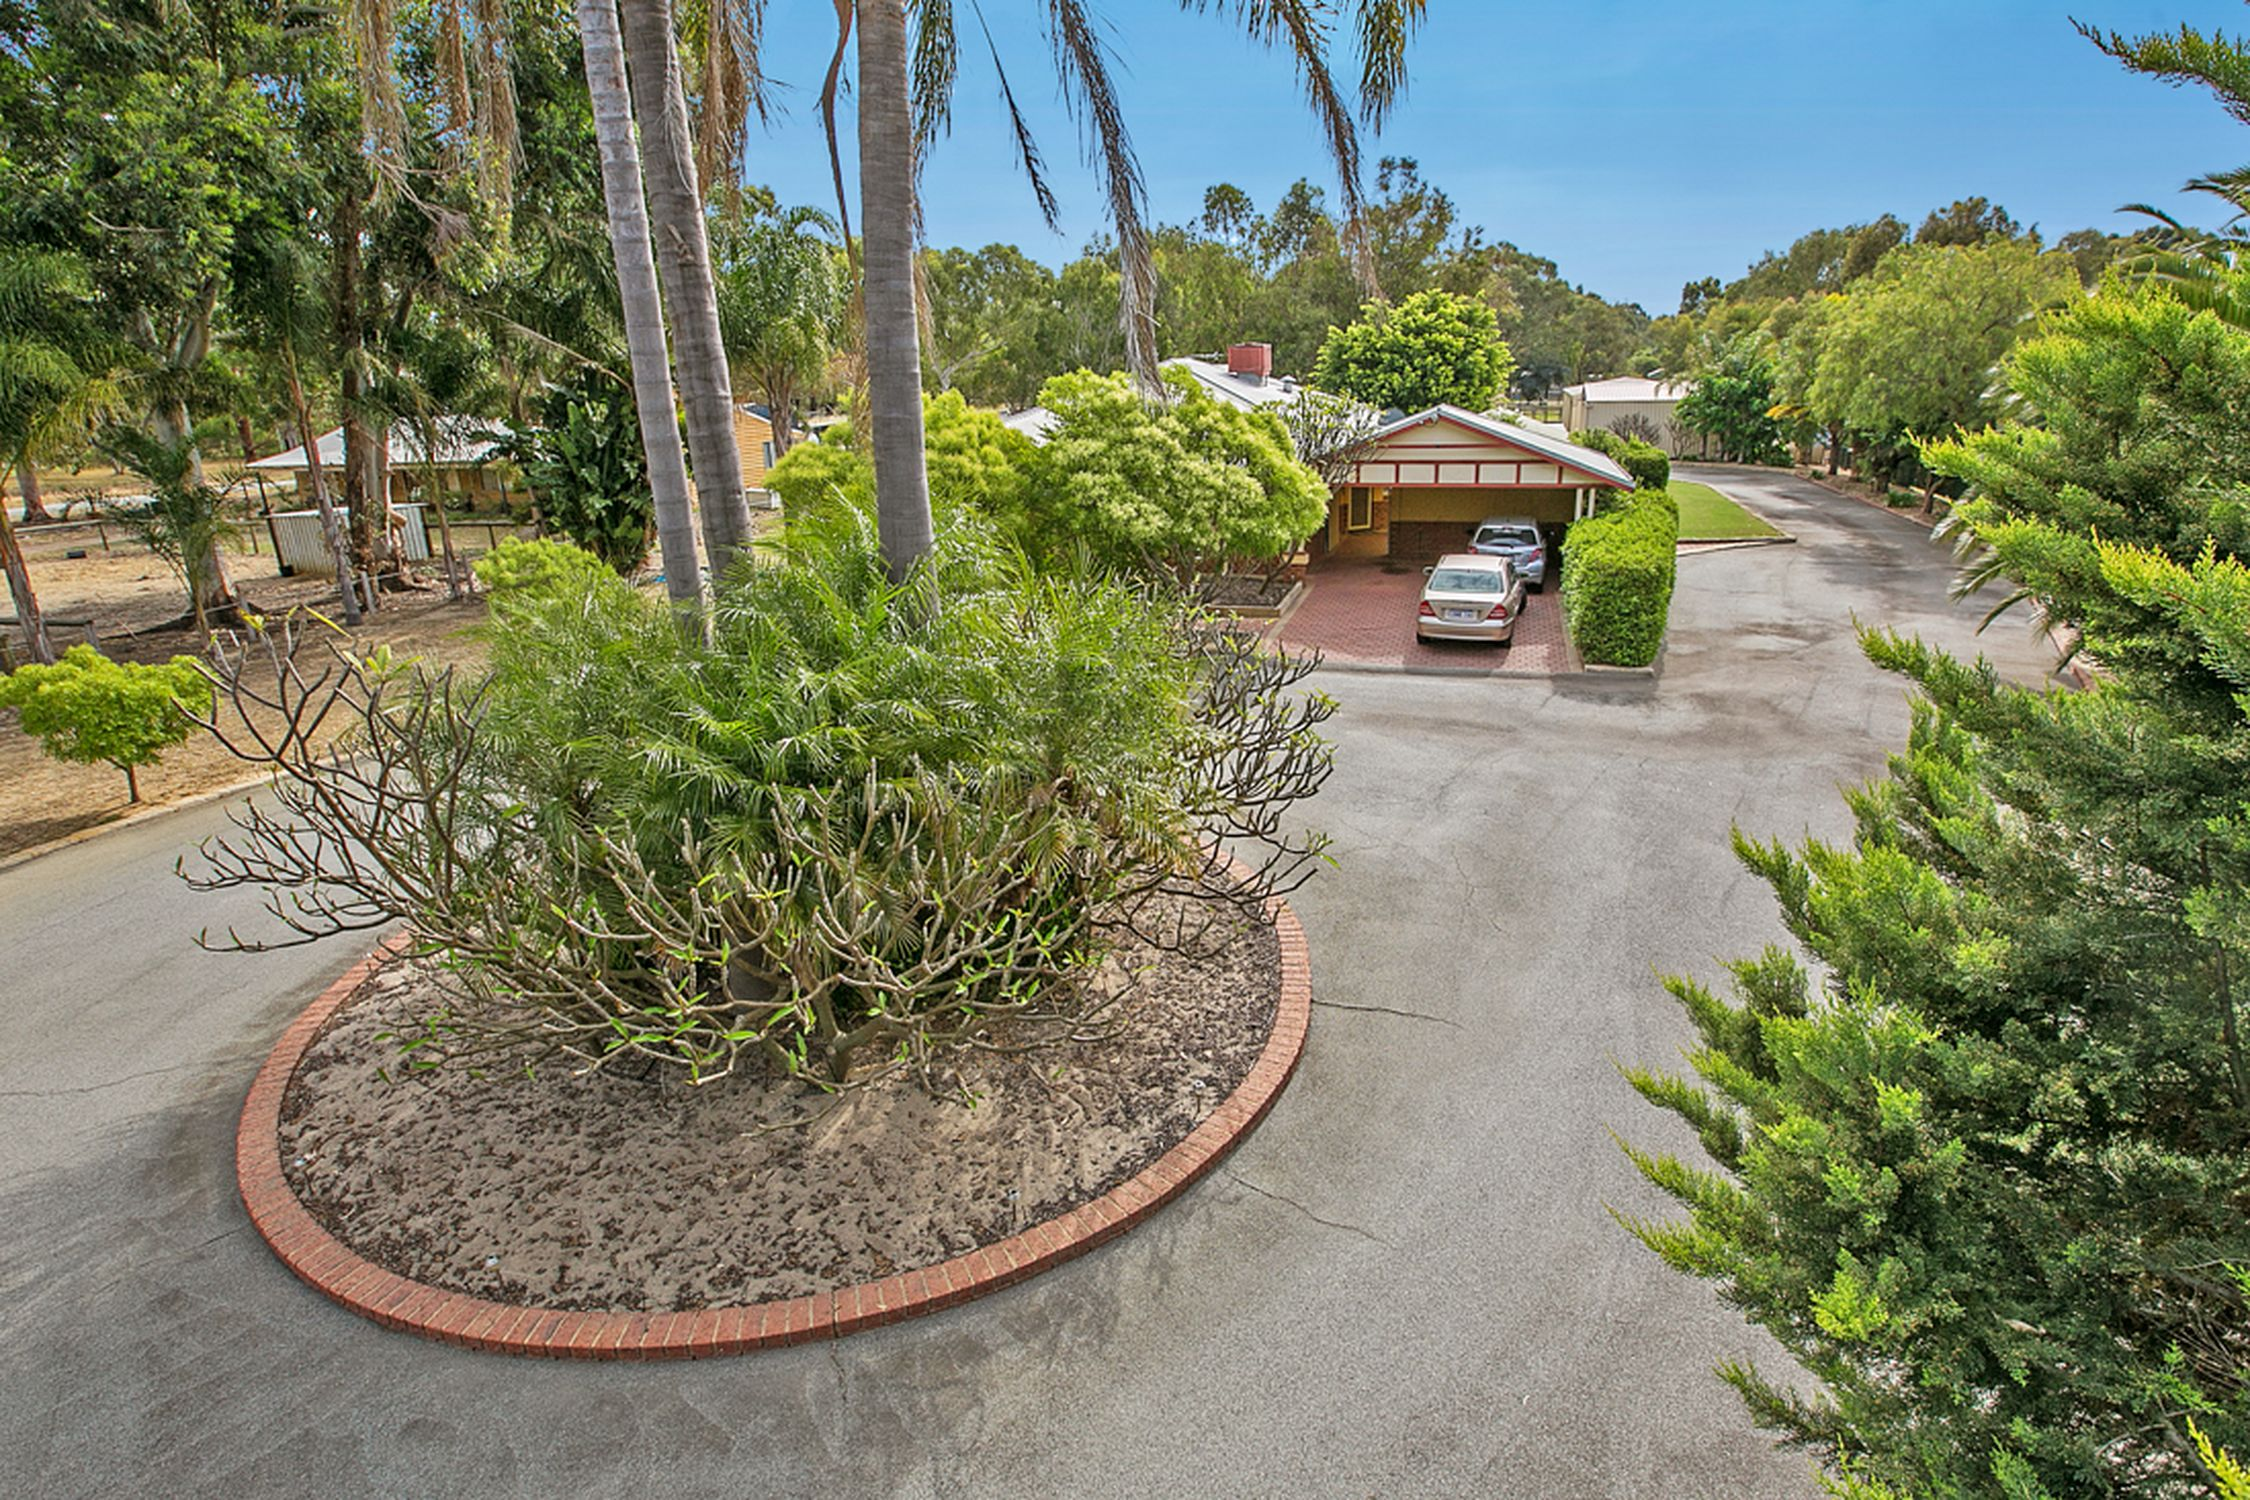 Property Report for Lot 28 Briggs Road, Byford WA 6122